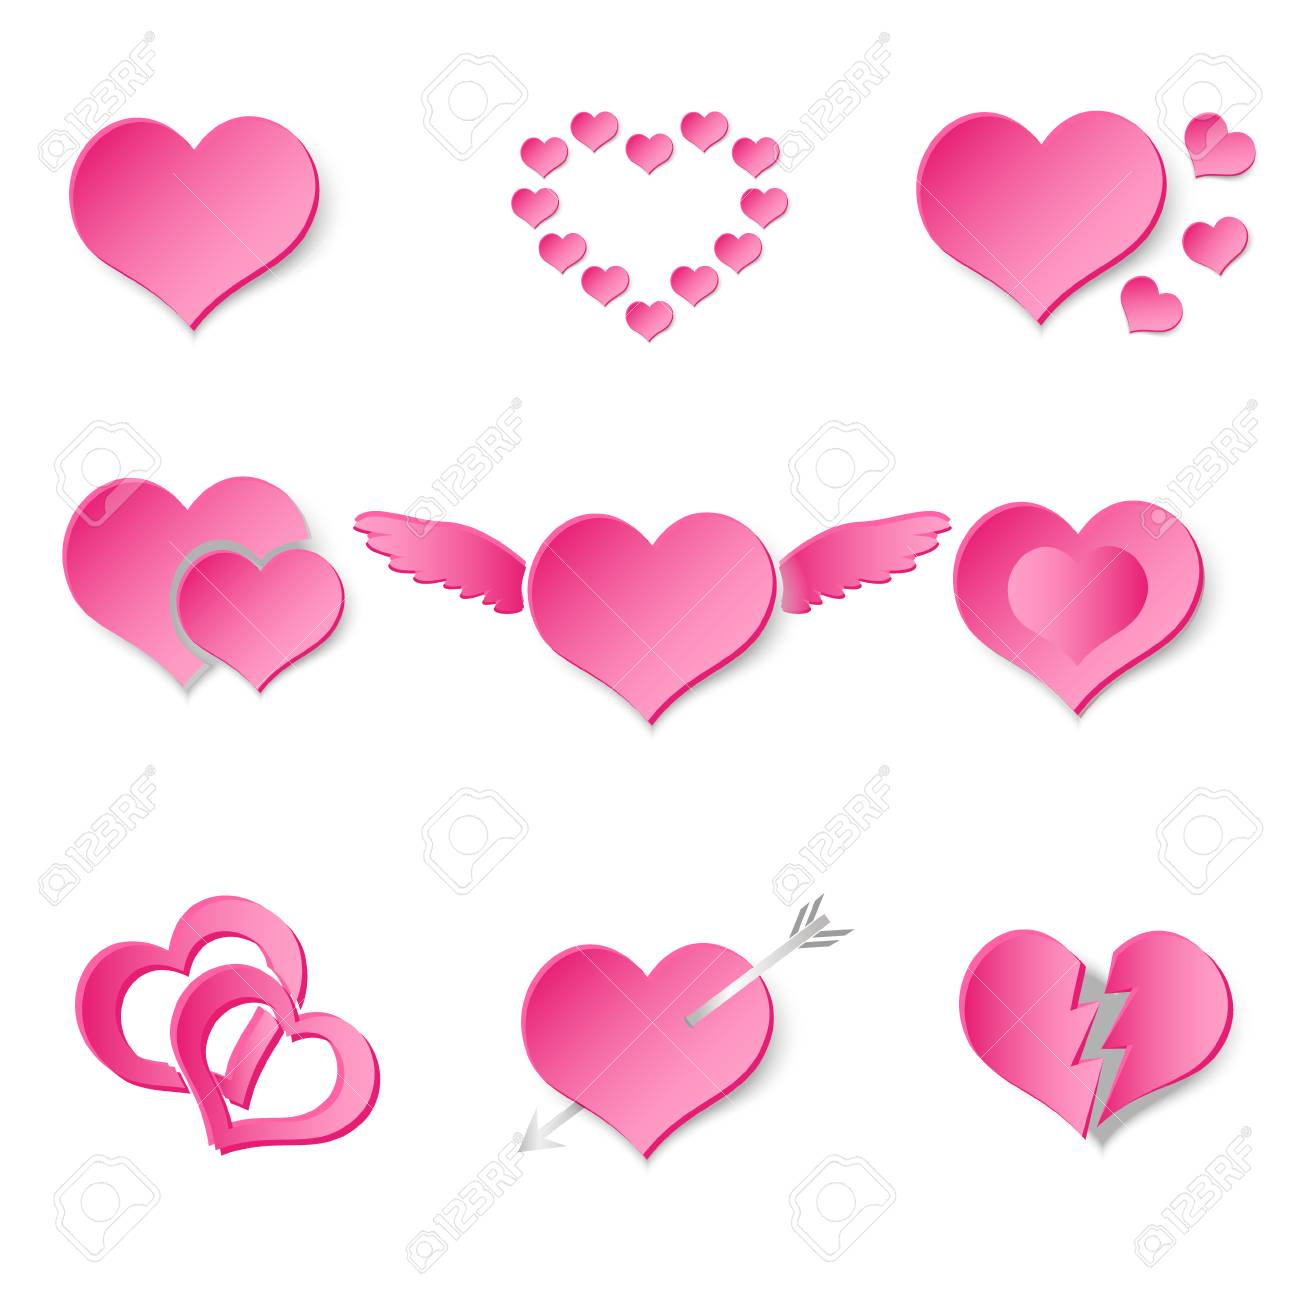 Set of pink paper style valentine hearth love symbols royalty free set of pink paper style valentine hearth love symbols stock vector 70914504 buycottarizona Image collections